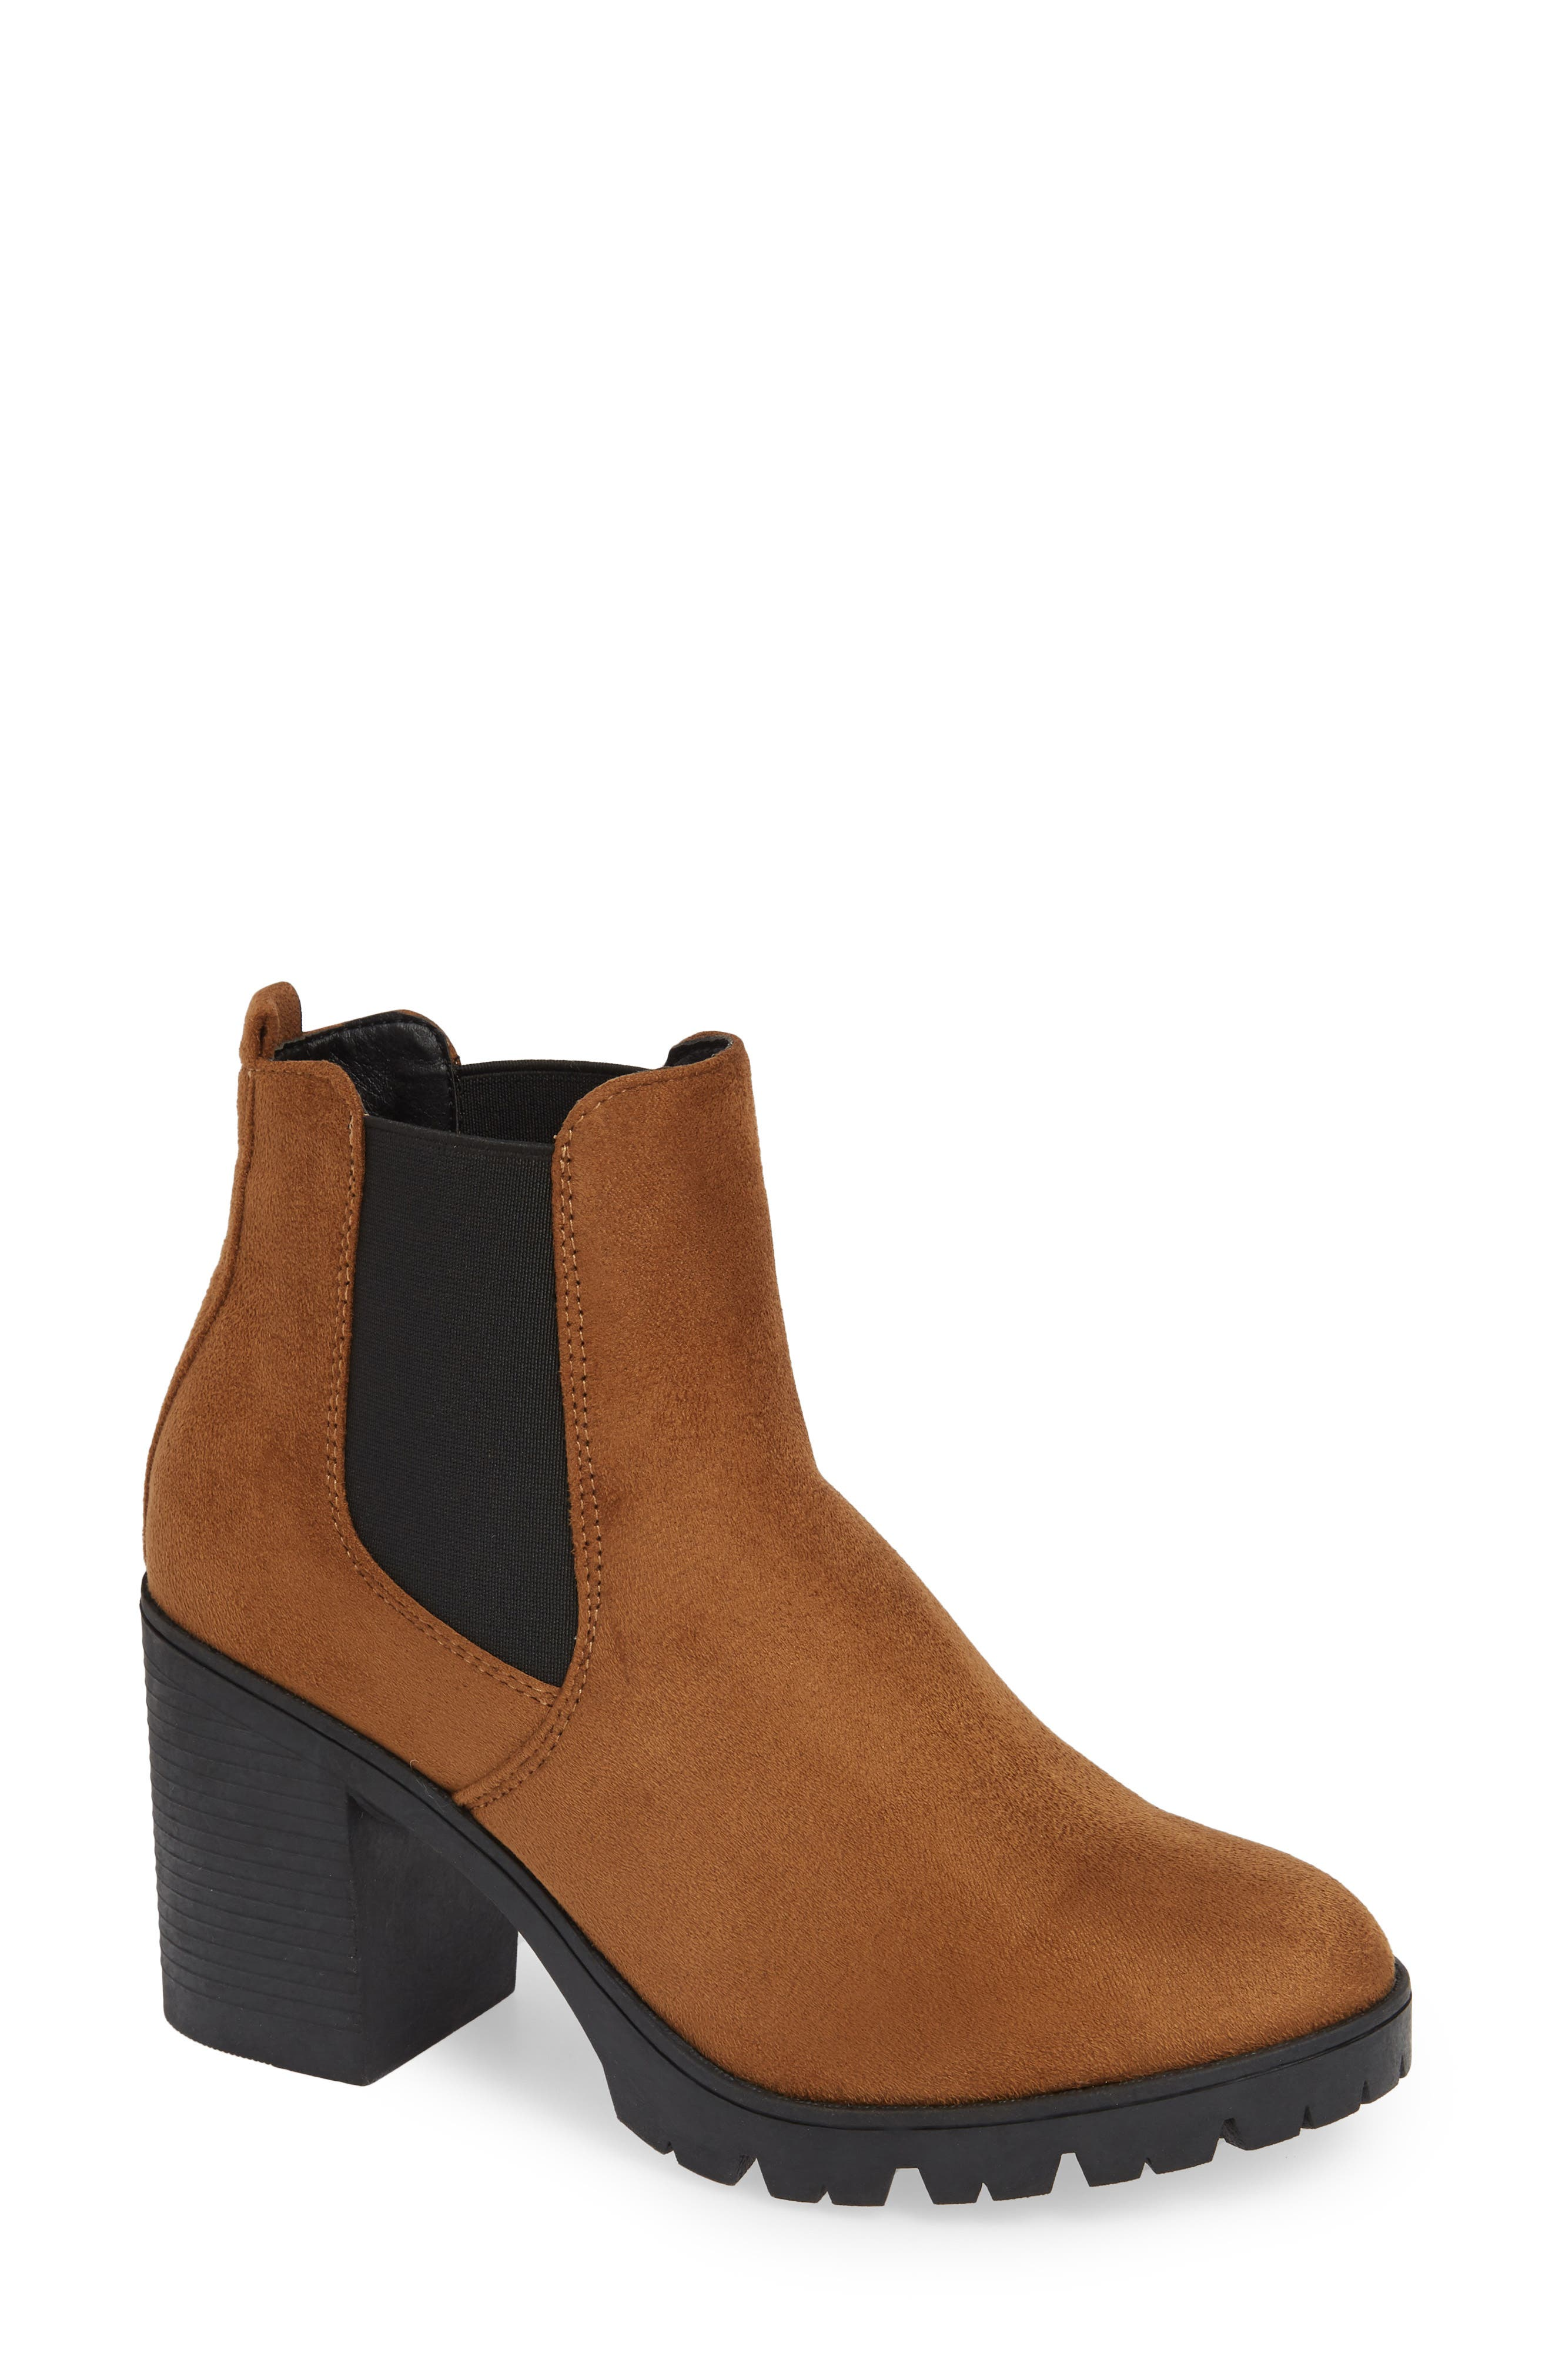 Bobby Chelsea Bootie,                         Main,                         color, 200